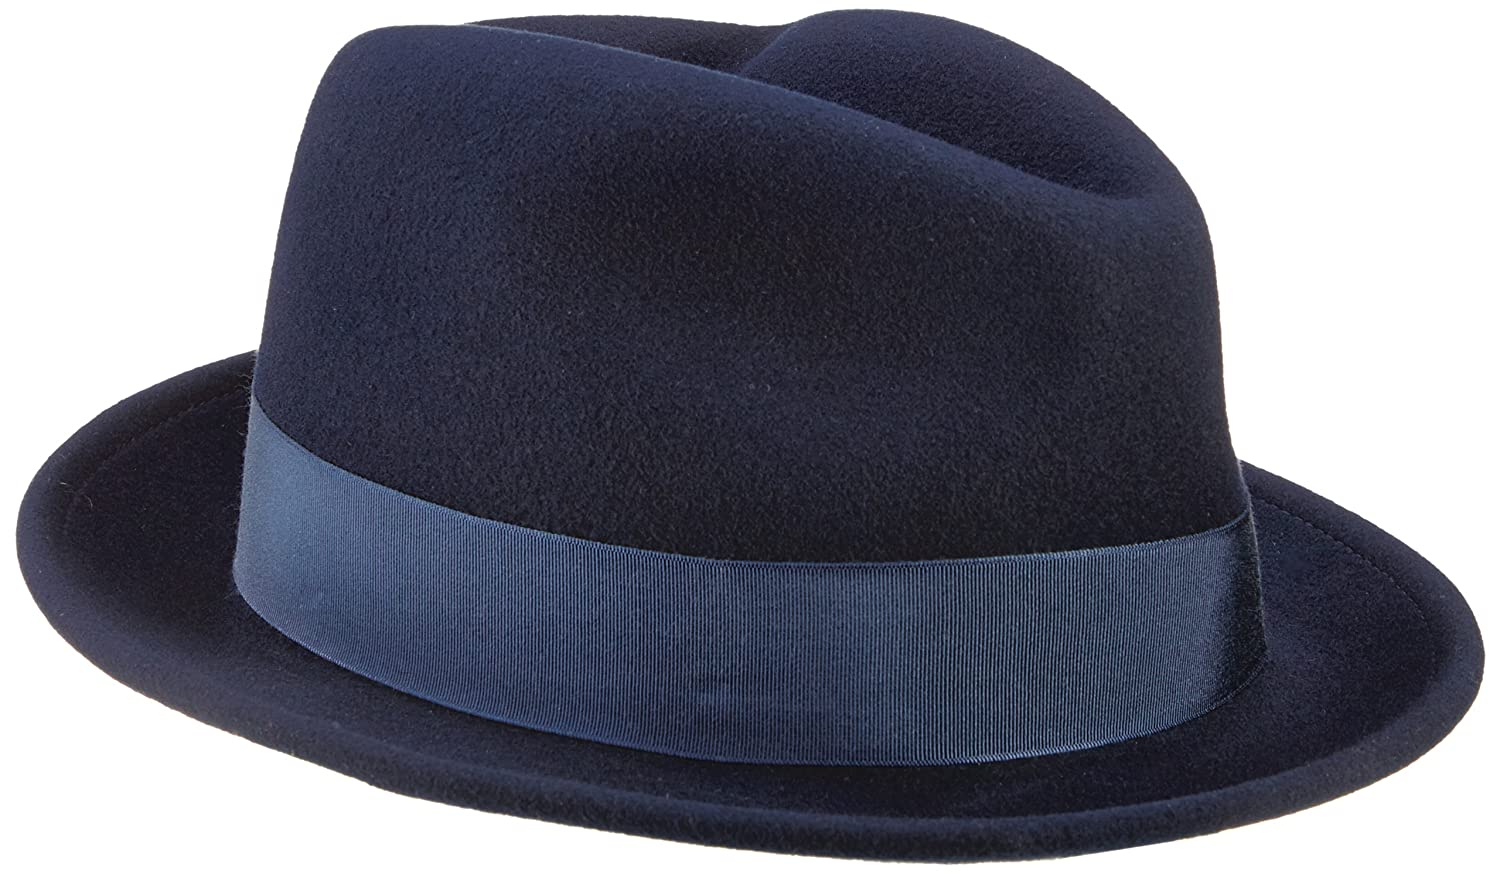 Bailey Unisex Tino Trilby Hat 7001